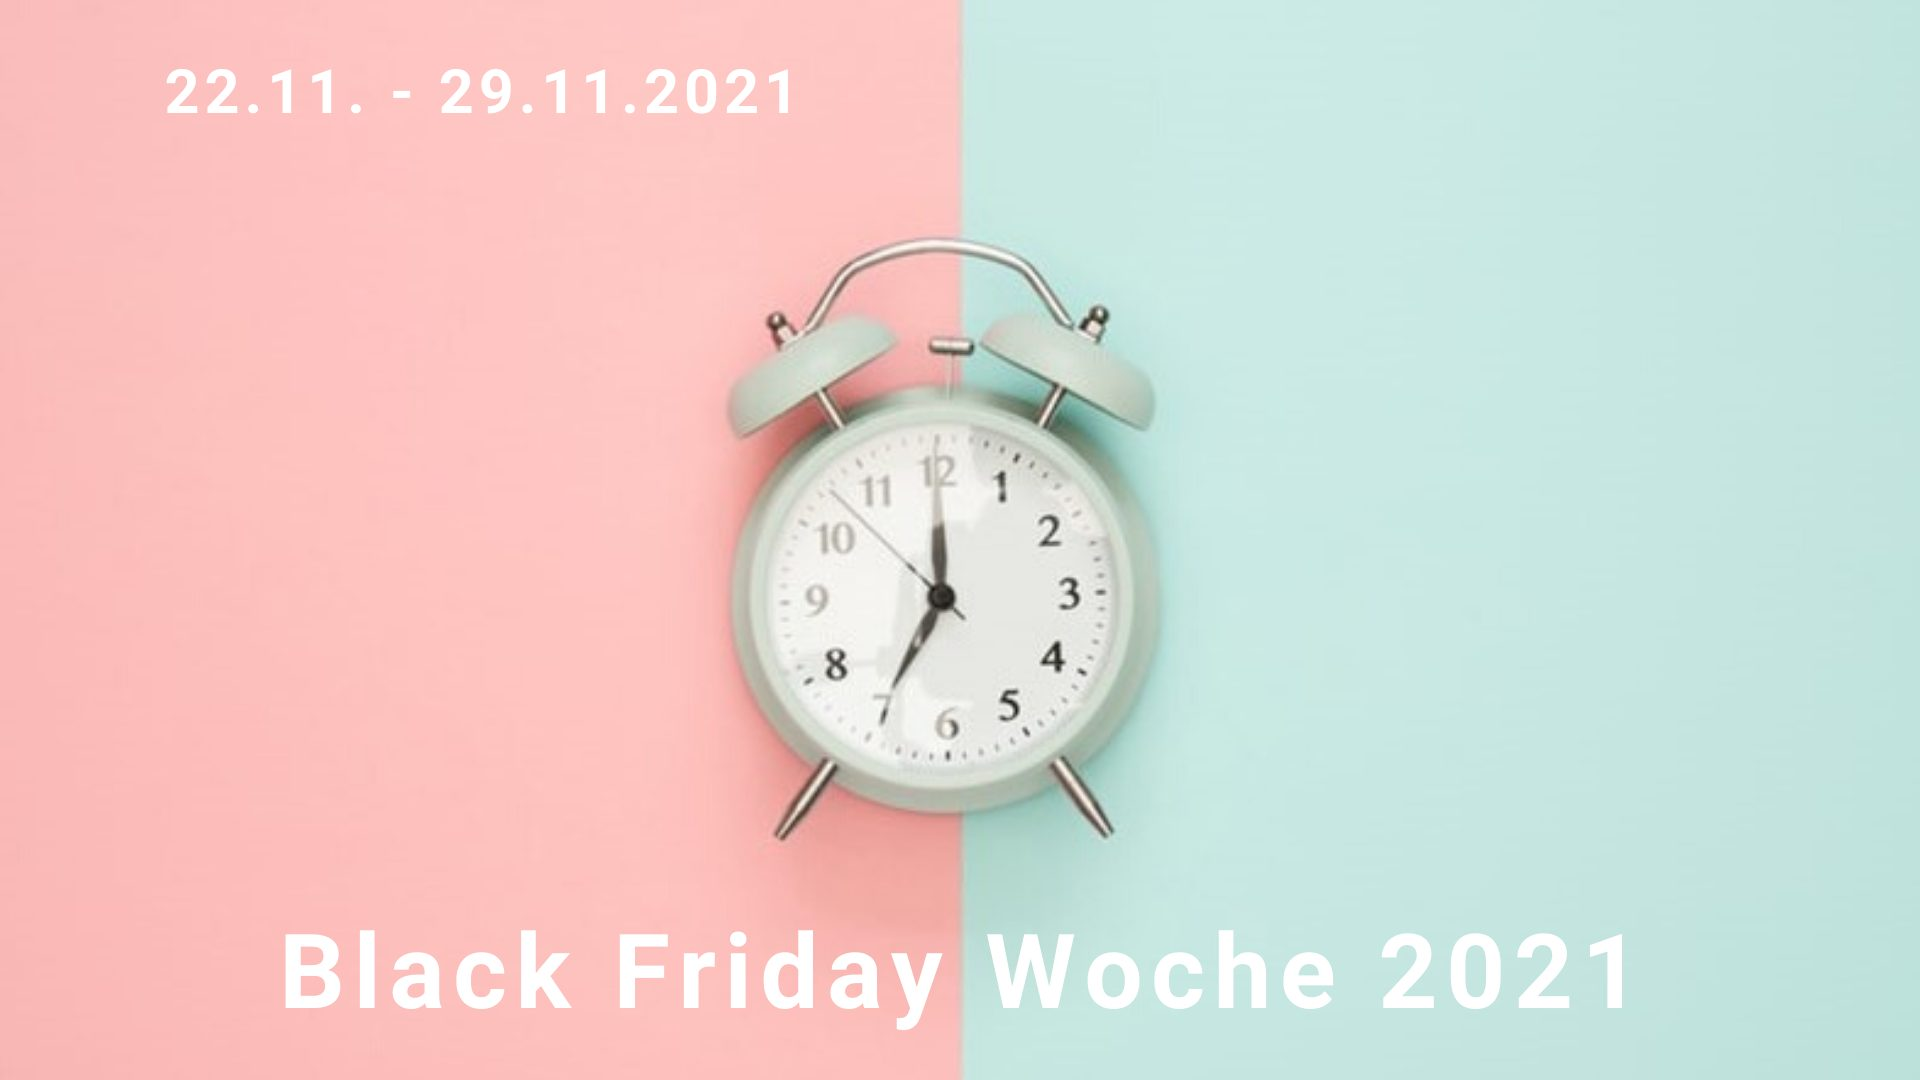 Black Friday Woche 2021